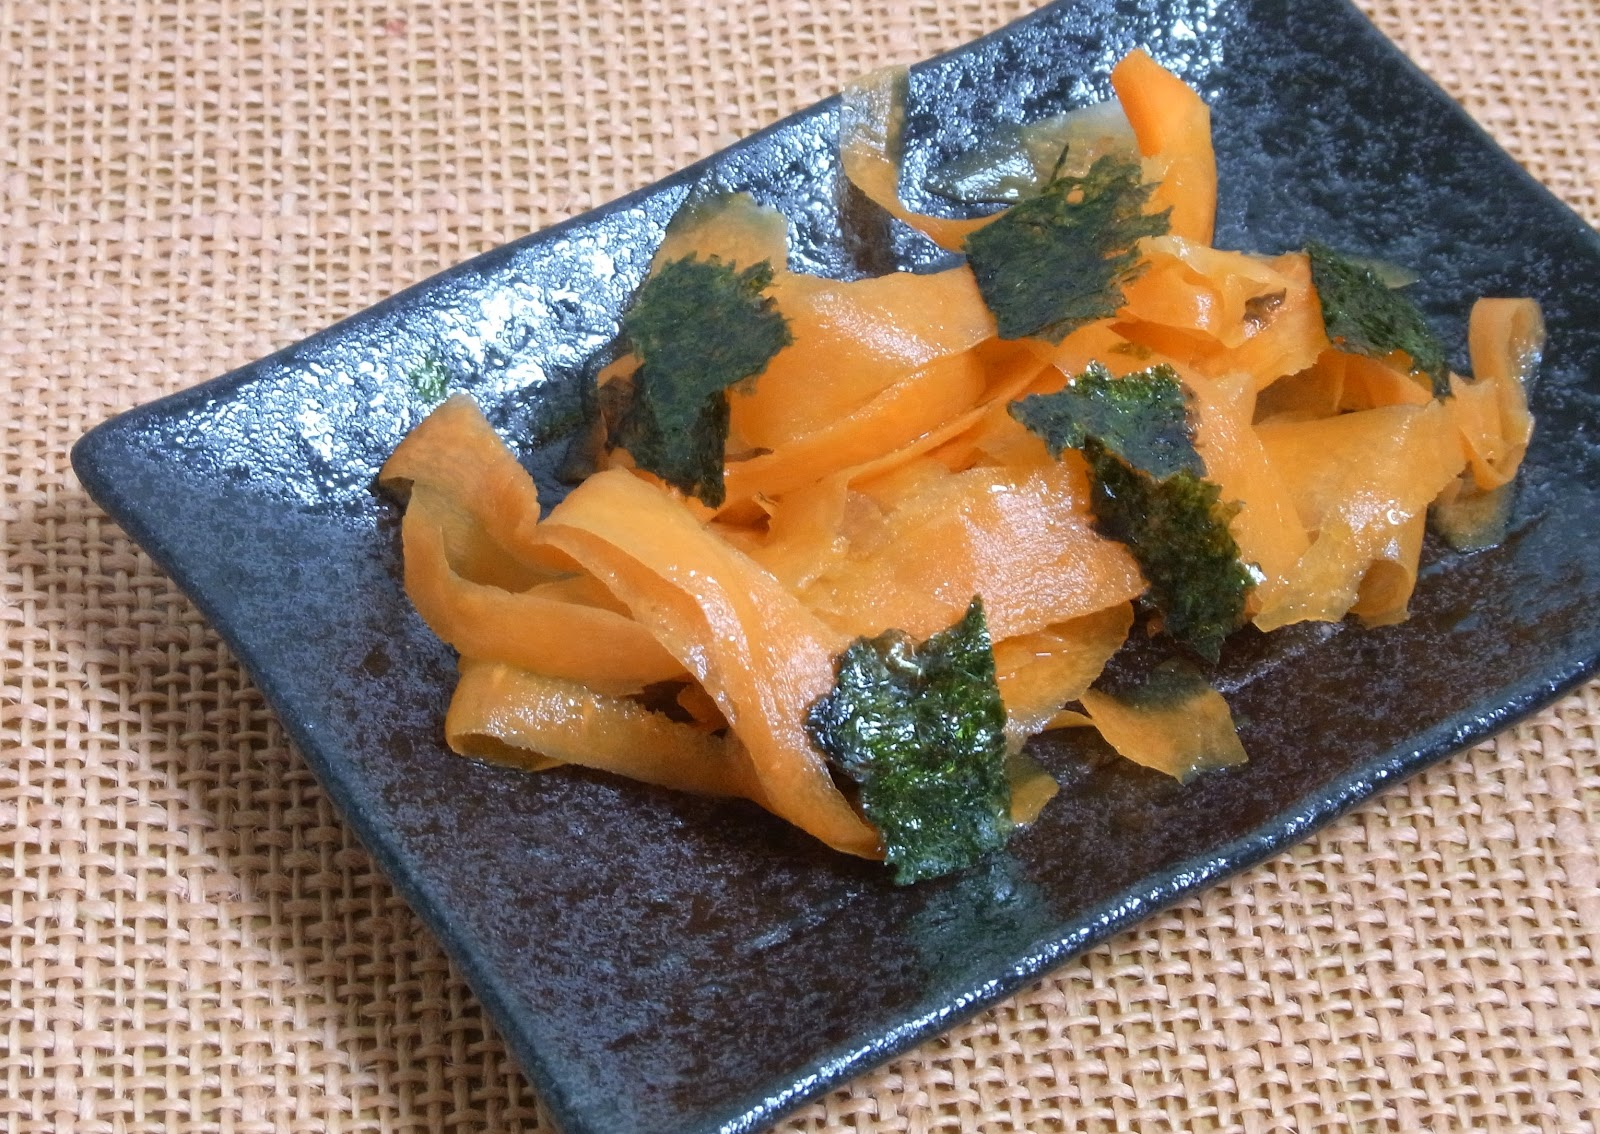 Miso and Yuzu: Japanese-style carrot salad with ginger soy sesame ...